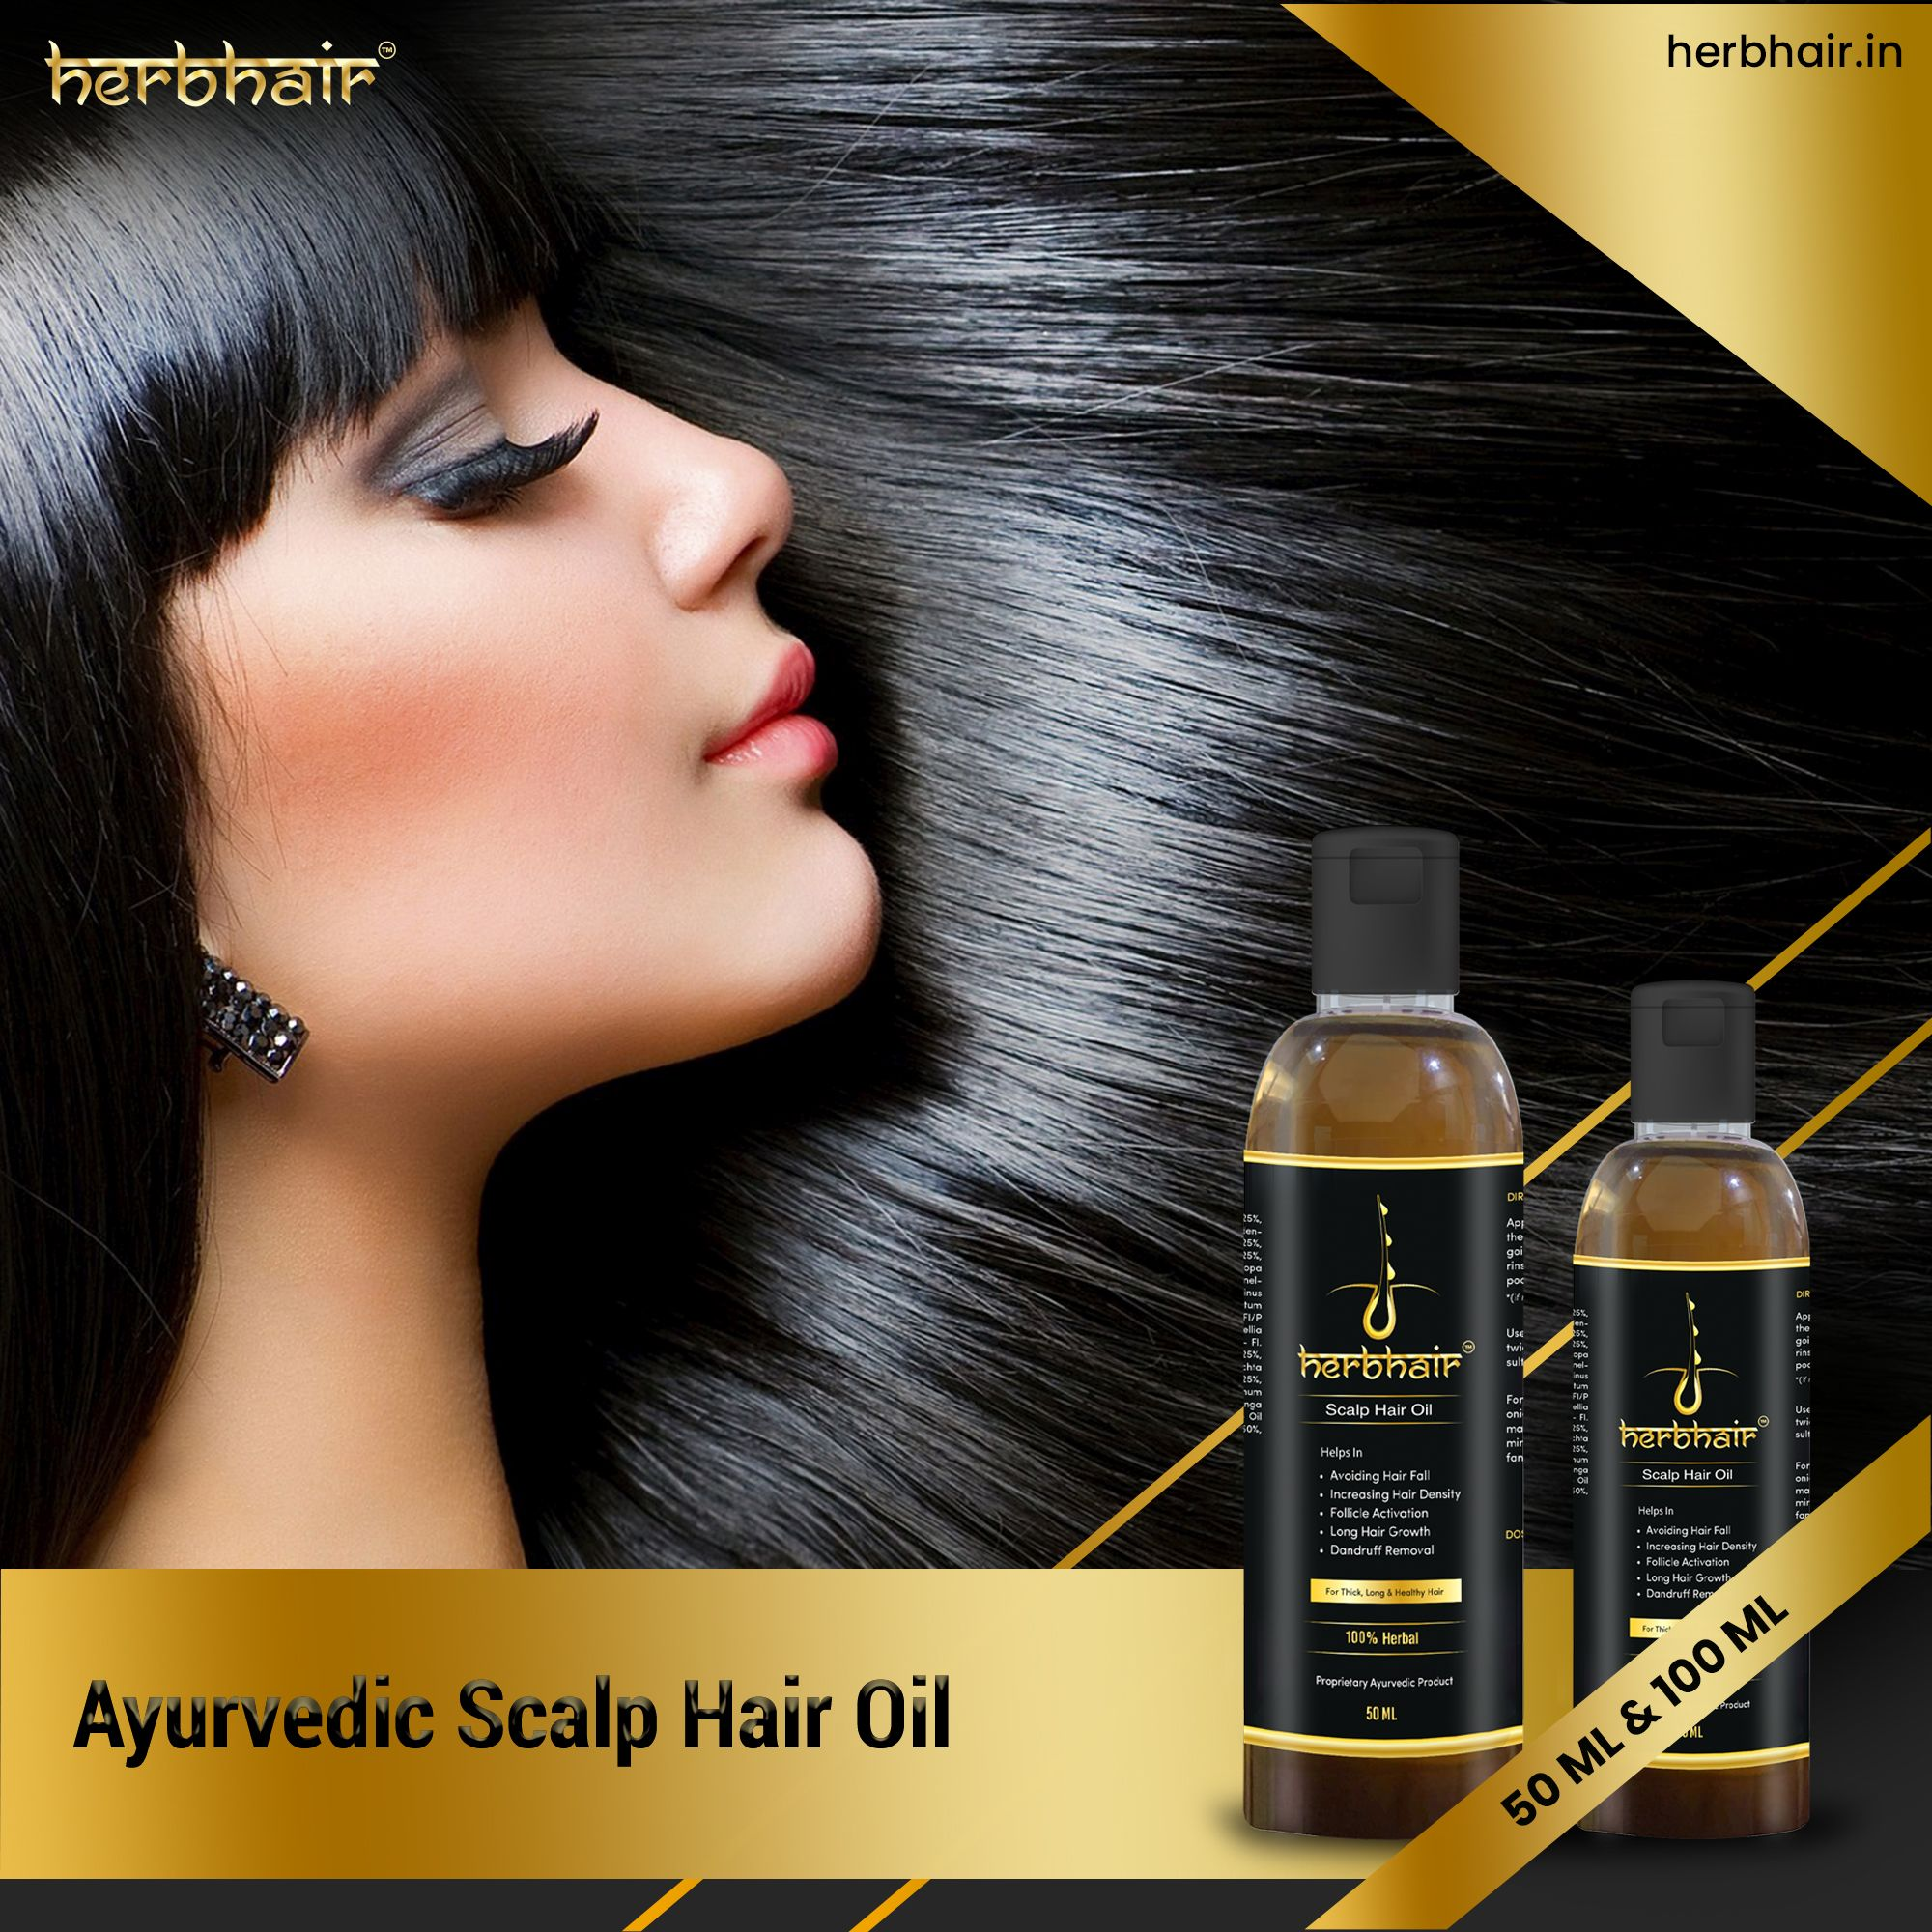 Ayurvedic Scalp Hair Oil Helps Prevent Hair Fall in 2020